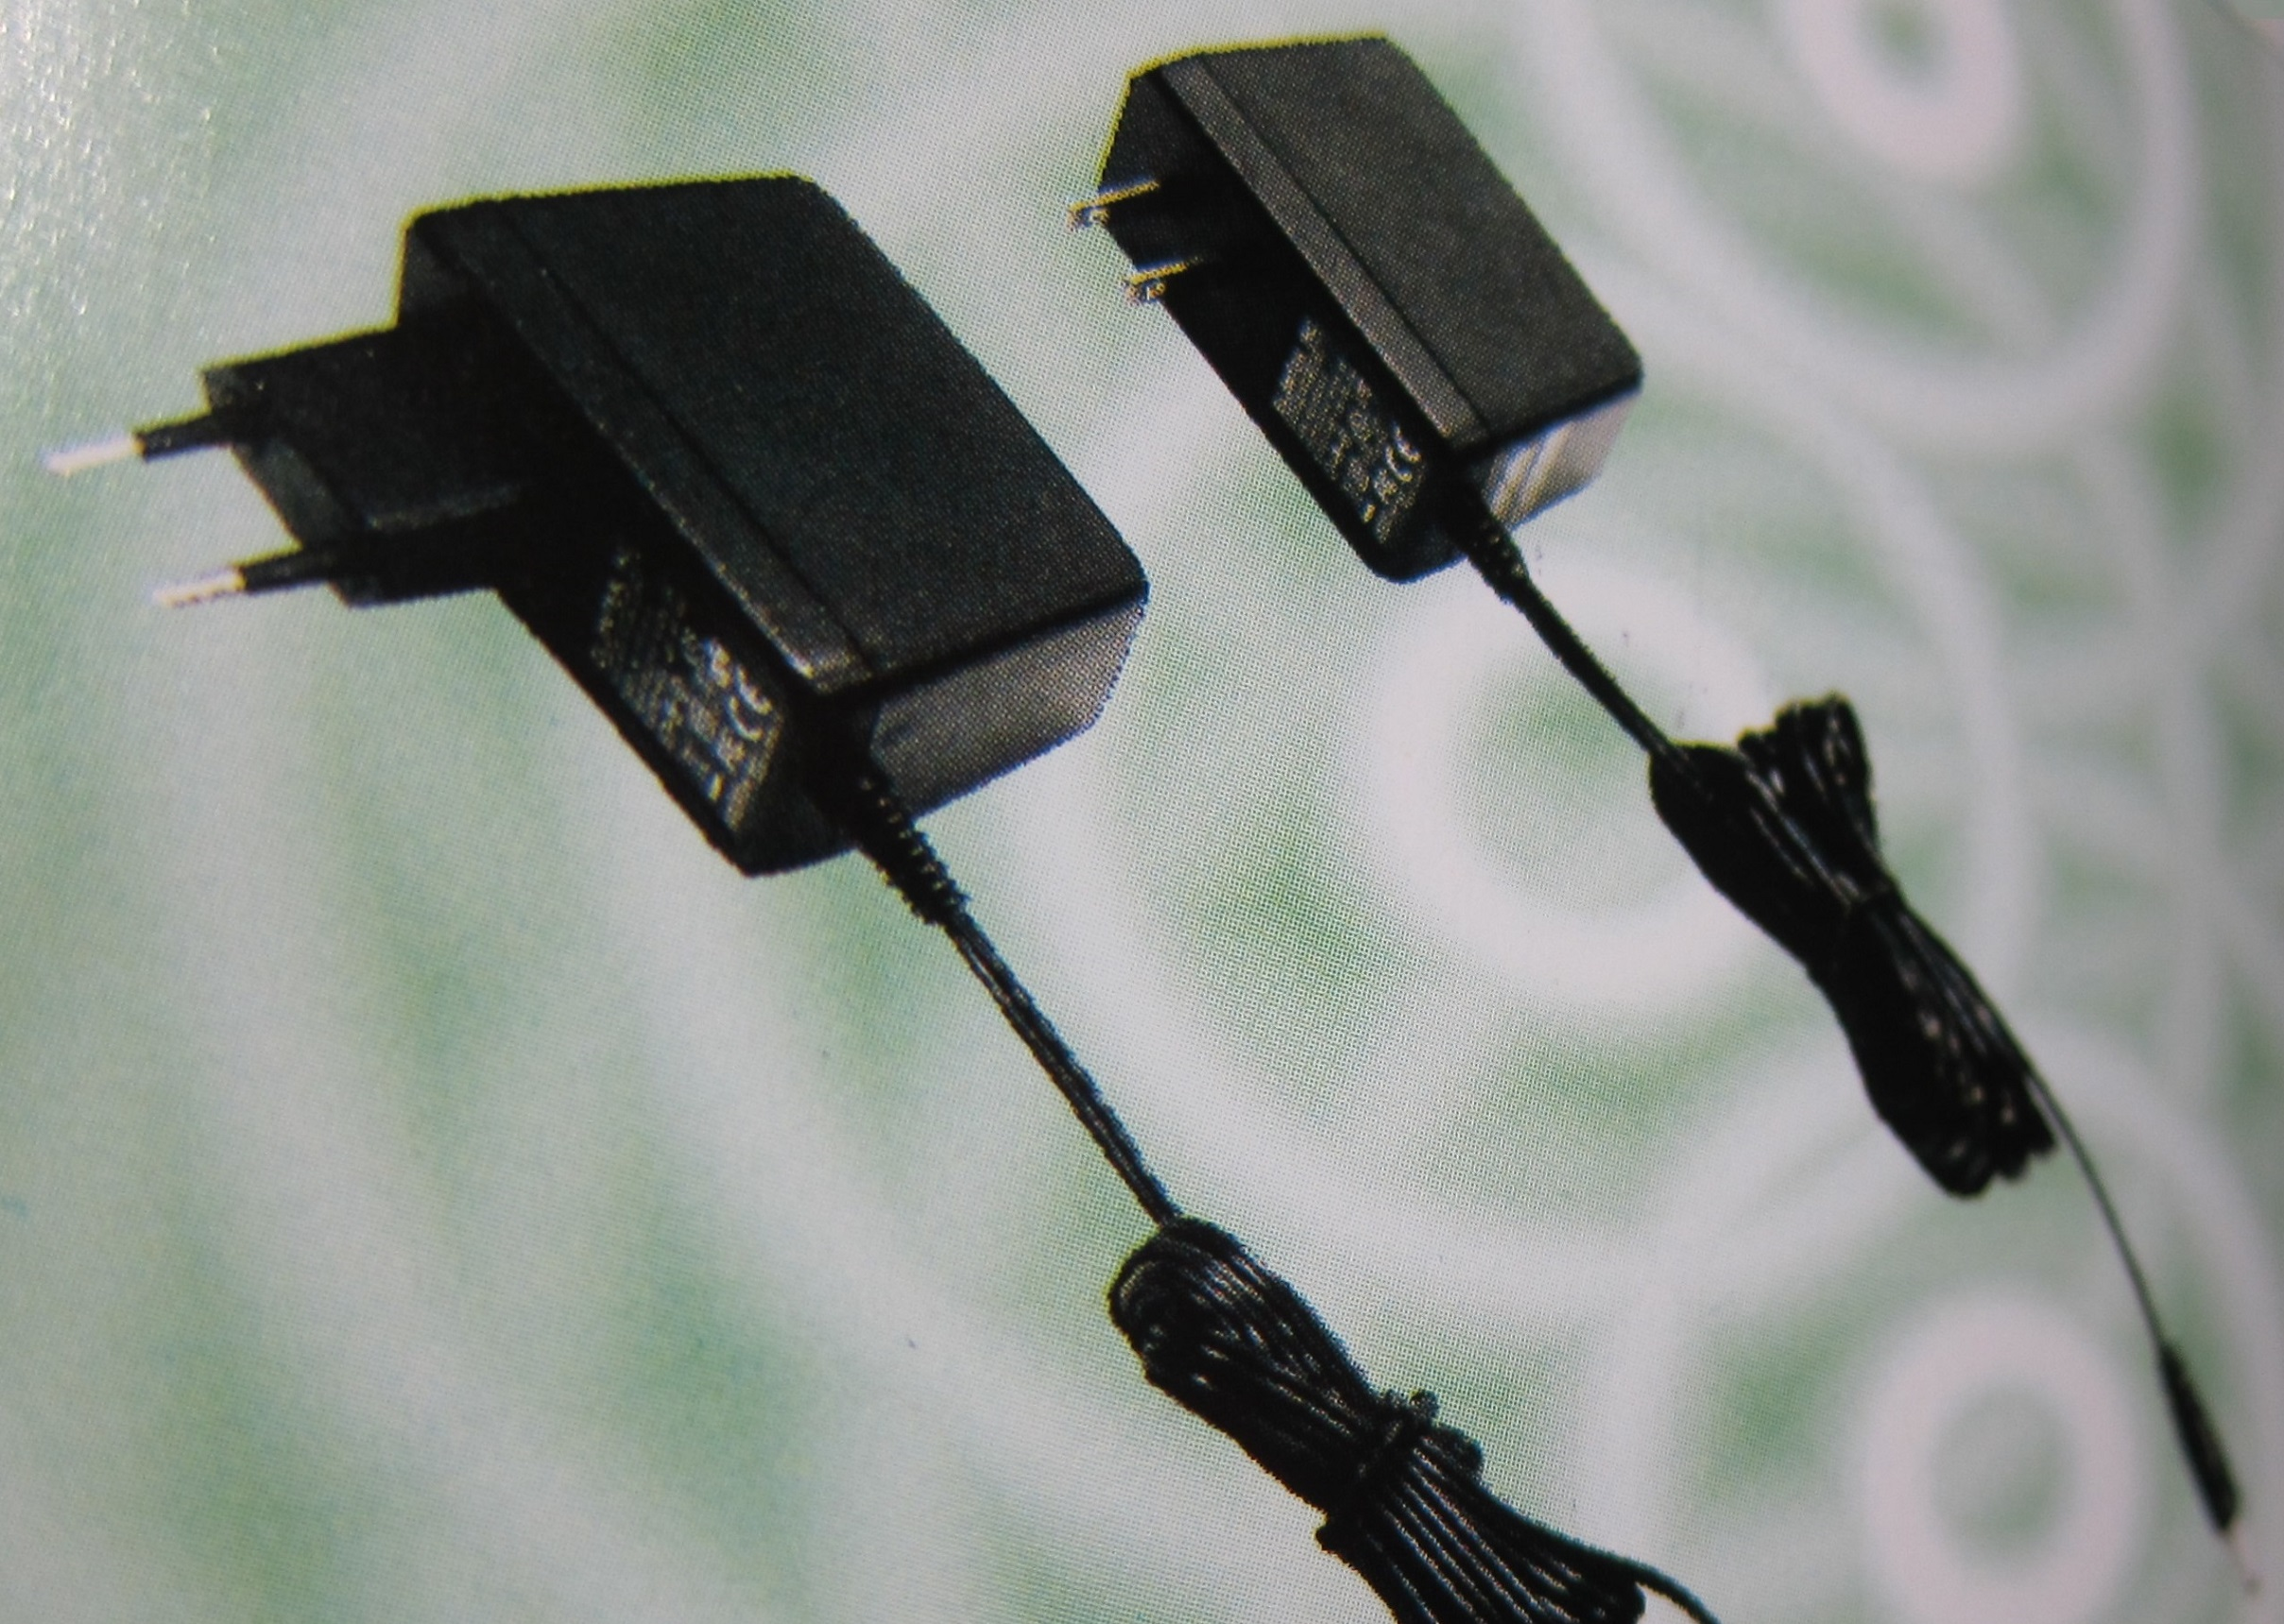 Taiwan Power Supply Switch Mode Switching Adapter Ac Electronic Which Is Switched Based